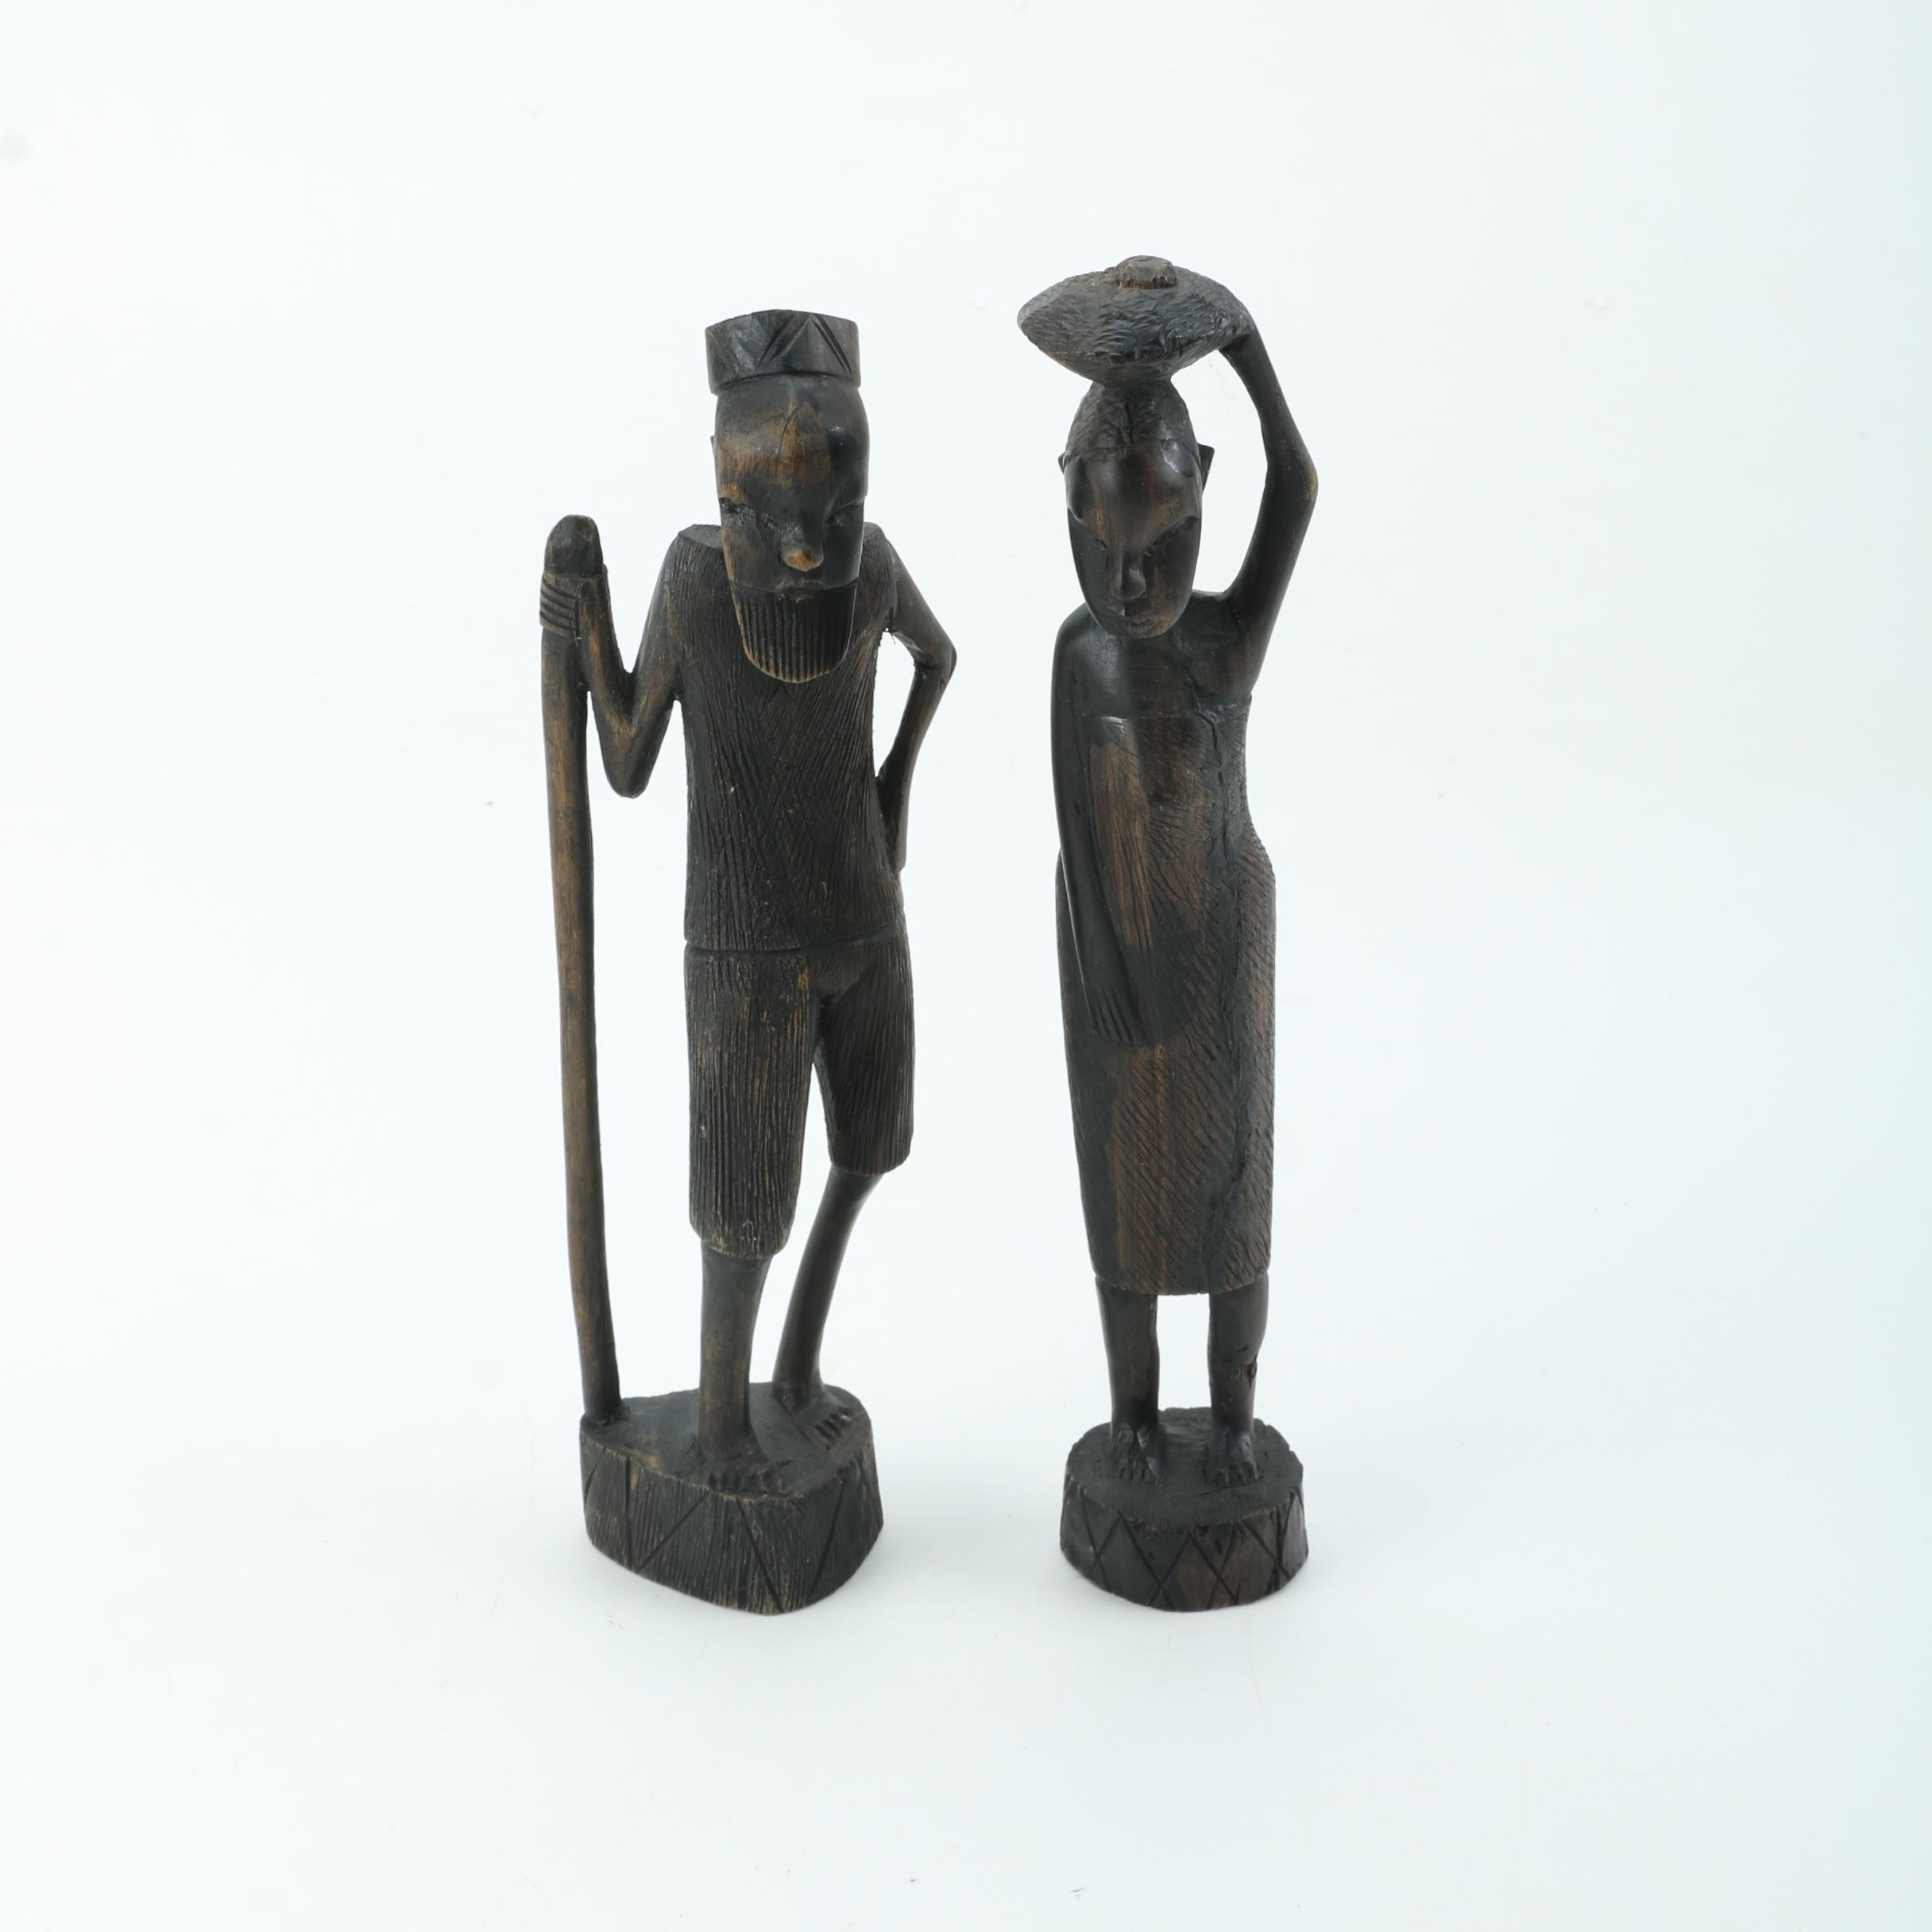 Kenyan Carved Wood Sculptures of a Man and Woman